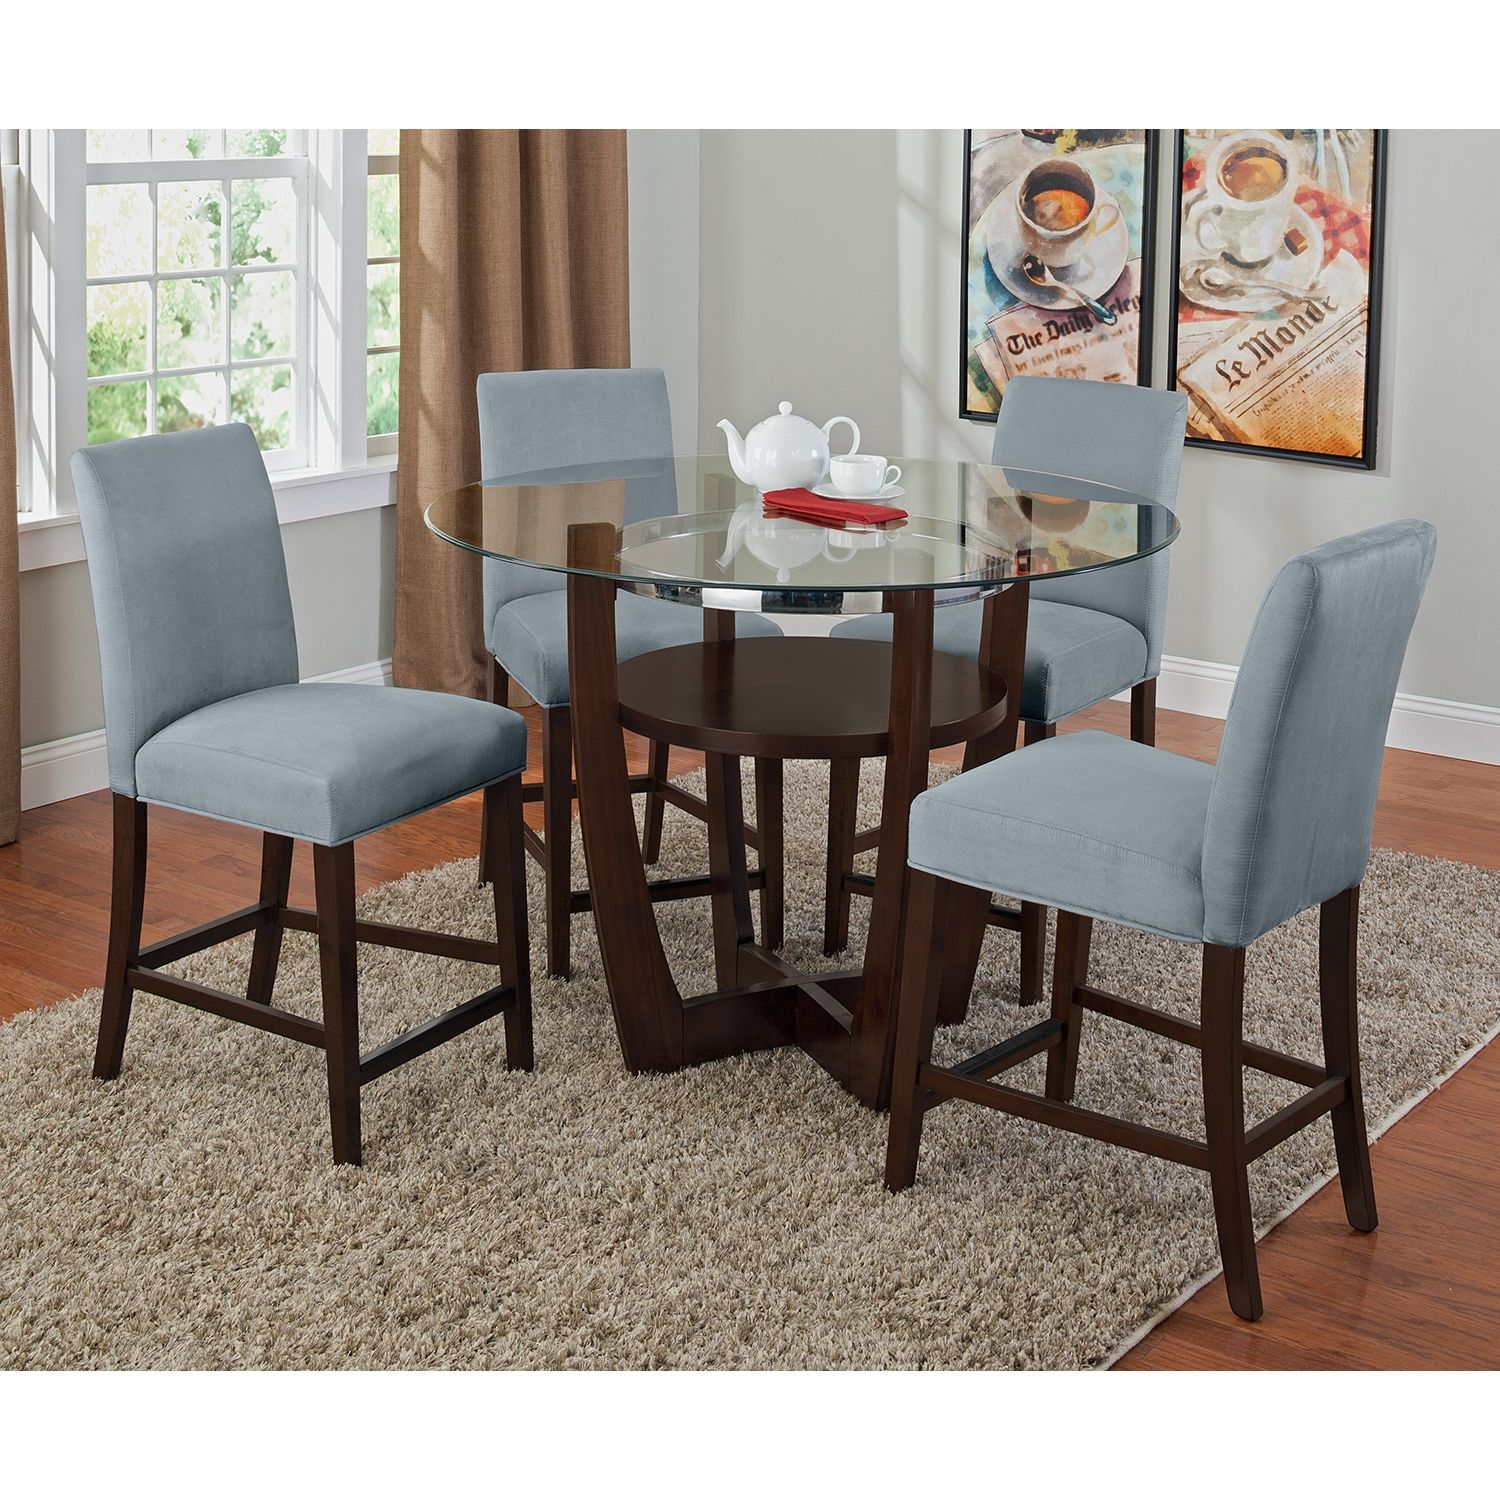 Bar Stool Dining Set Nice Home Decoration Interior